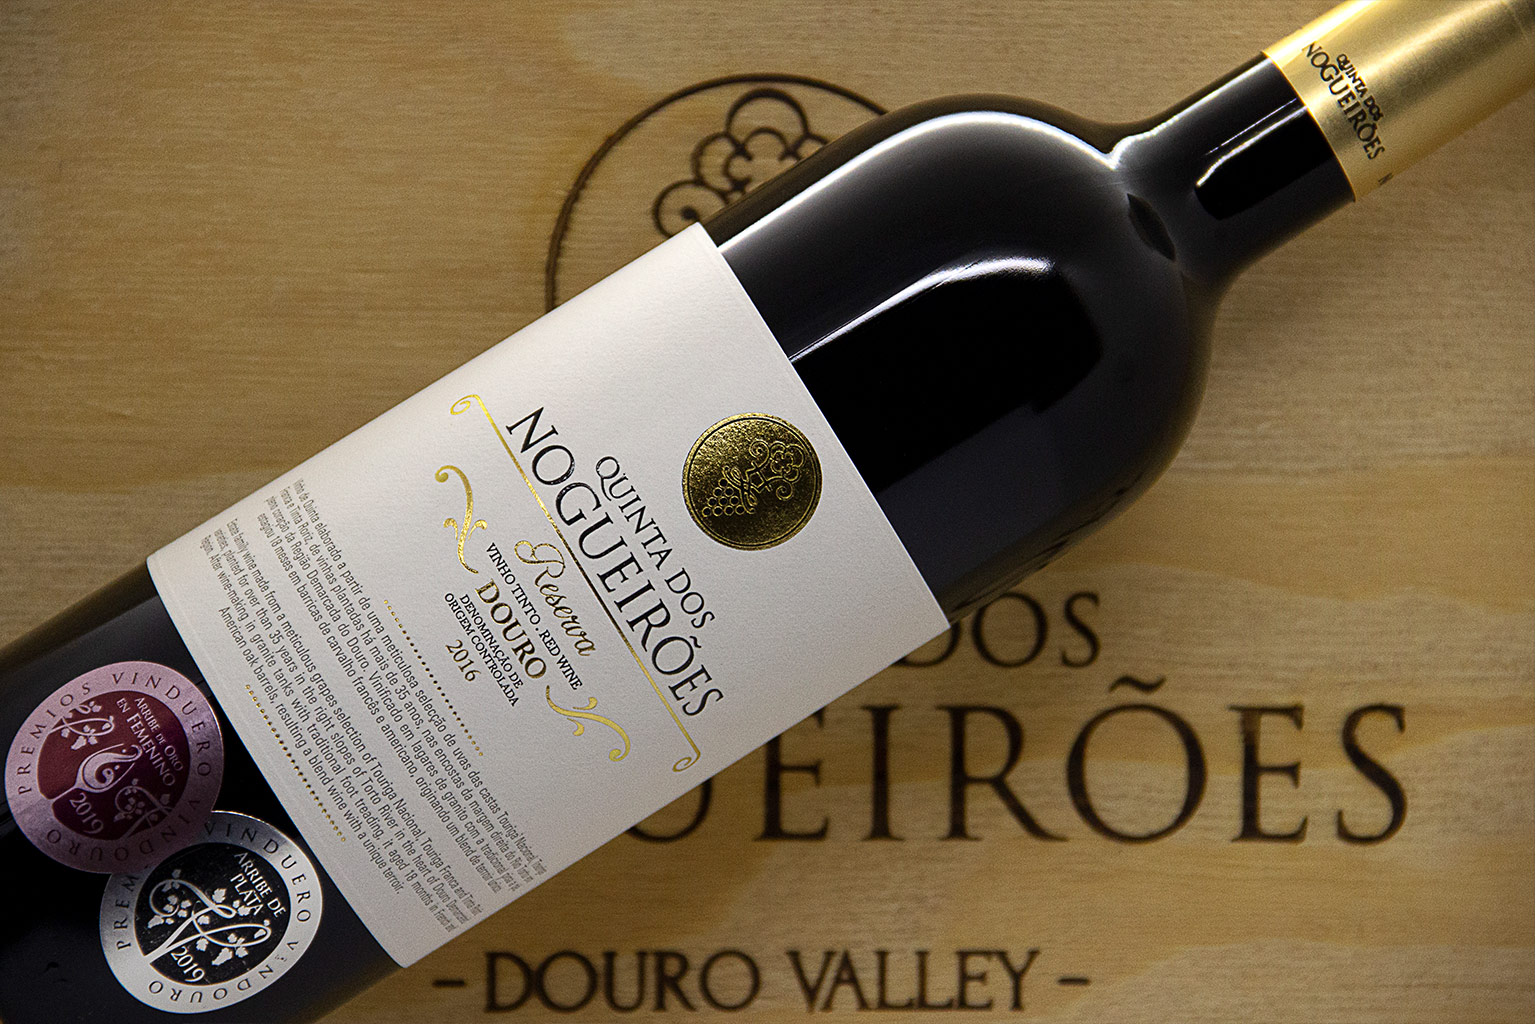 Quinta dos Nogueirões: From farming to wine production in the Douro Valley